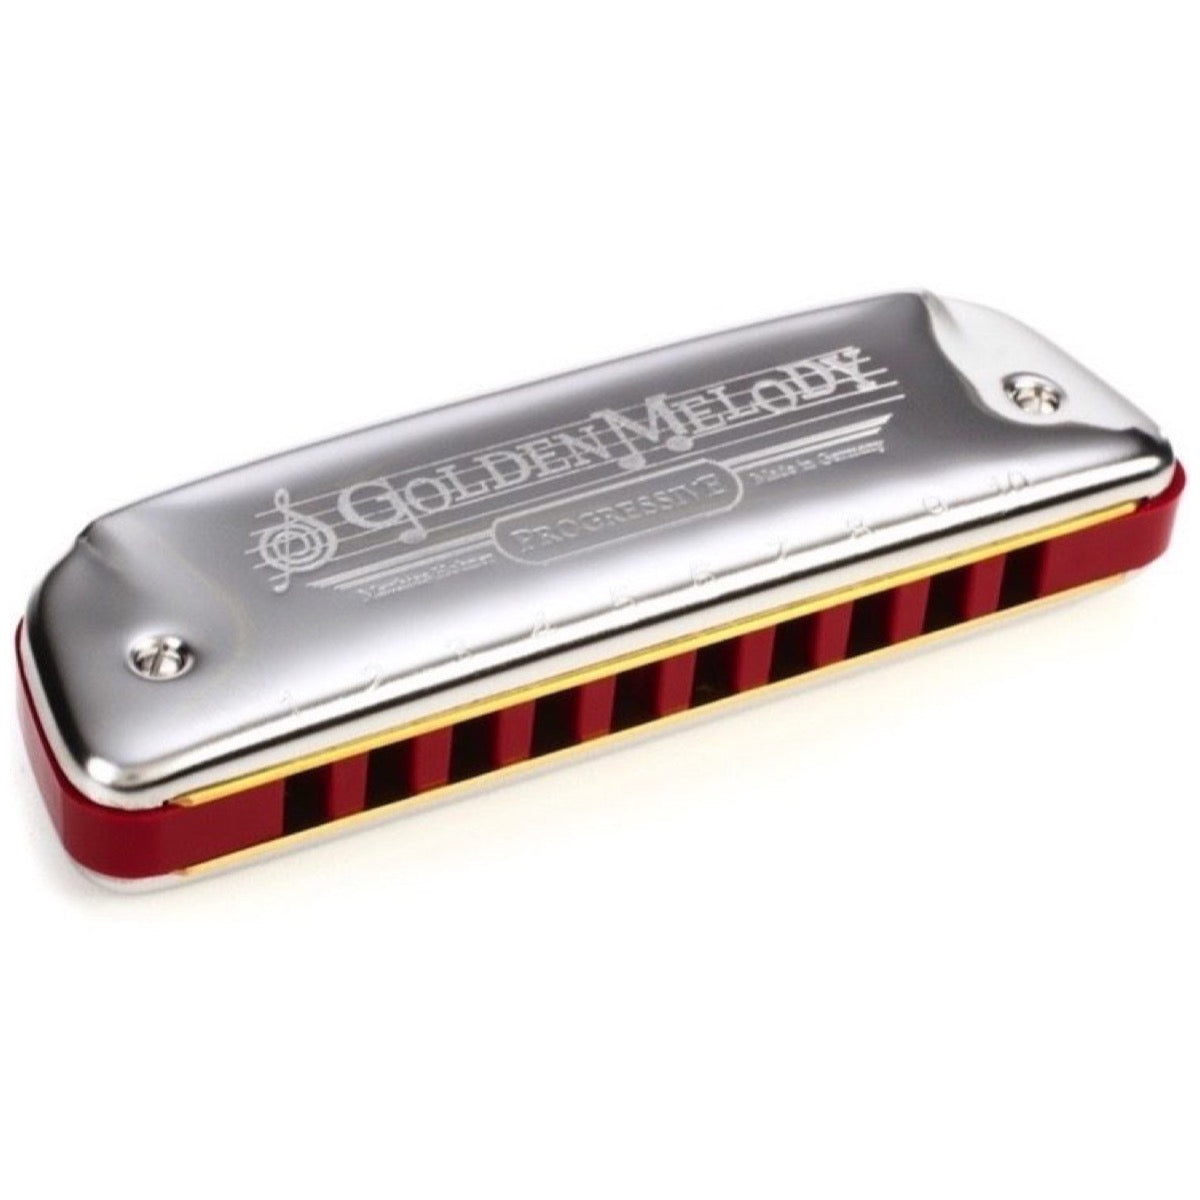 Hohner Golden Melody Diatonic Harmonica, 542PBX-E, Key of E